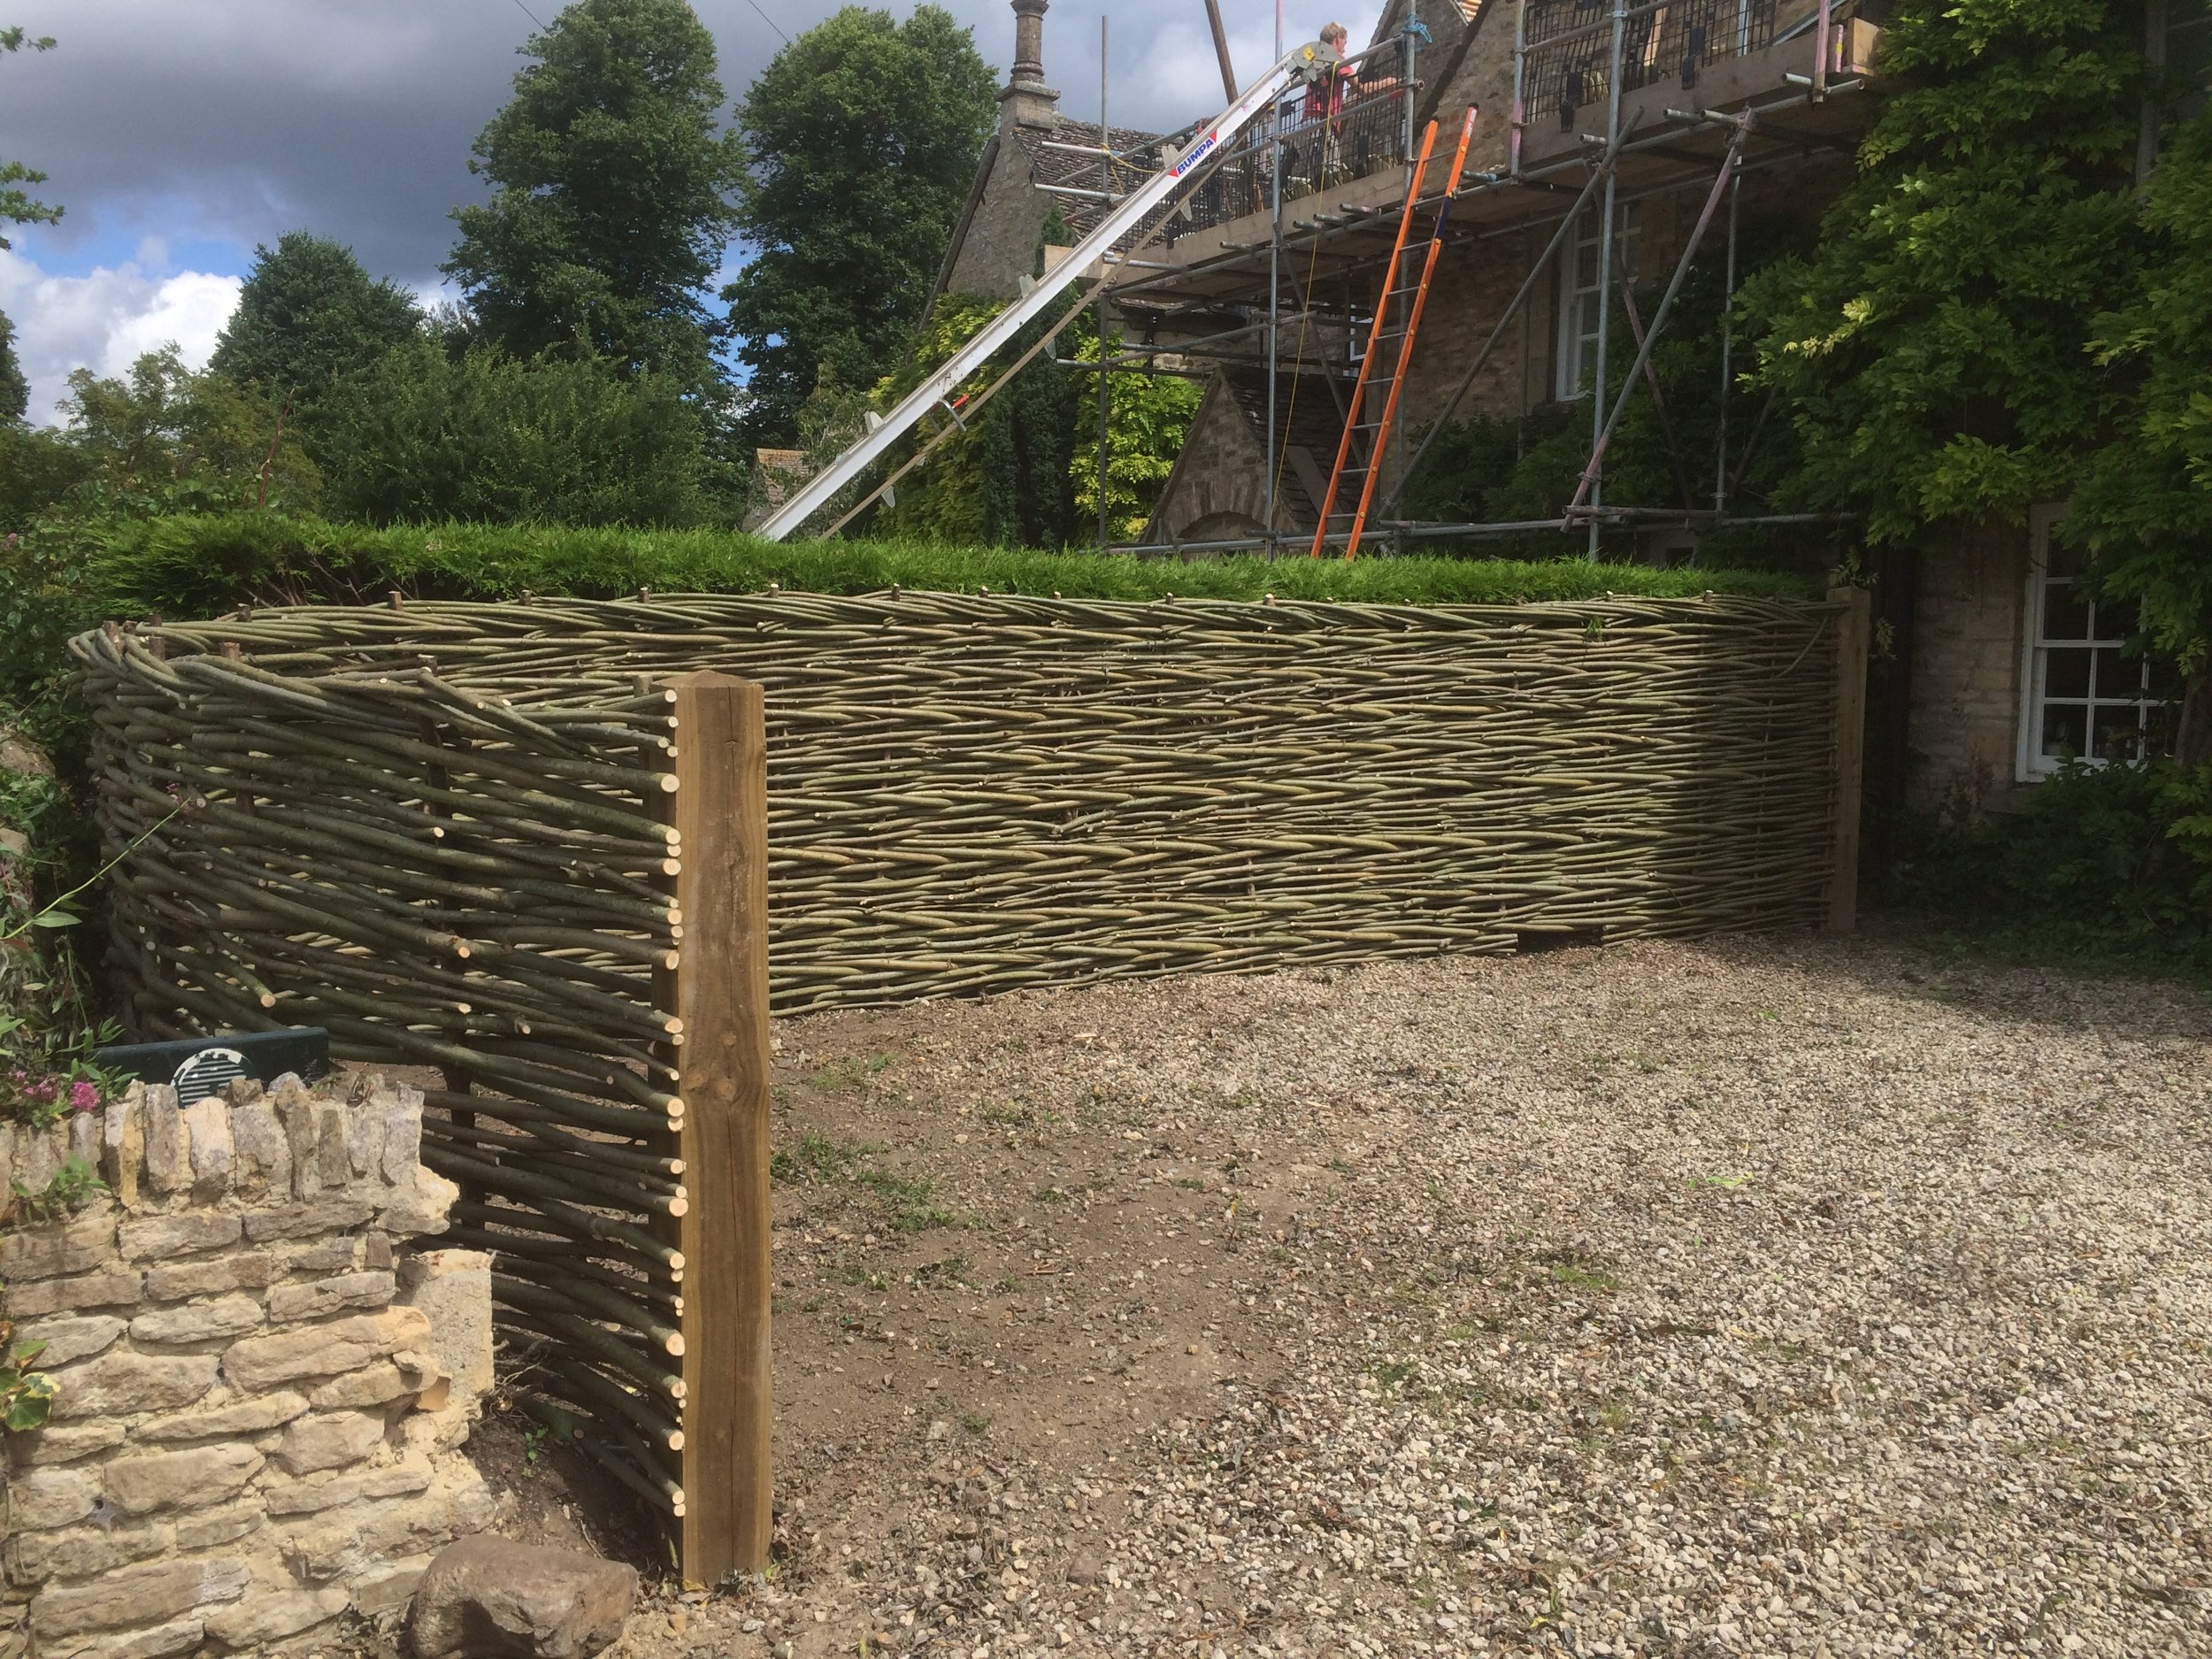 A natural woven willow fence